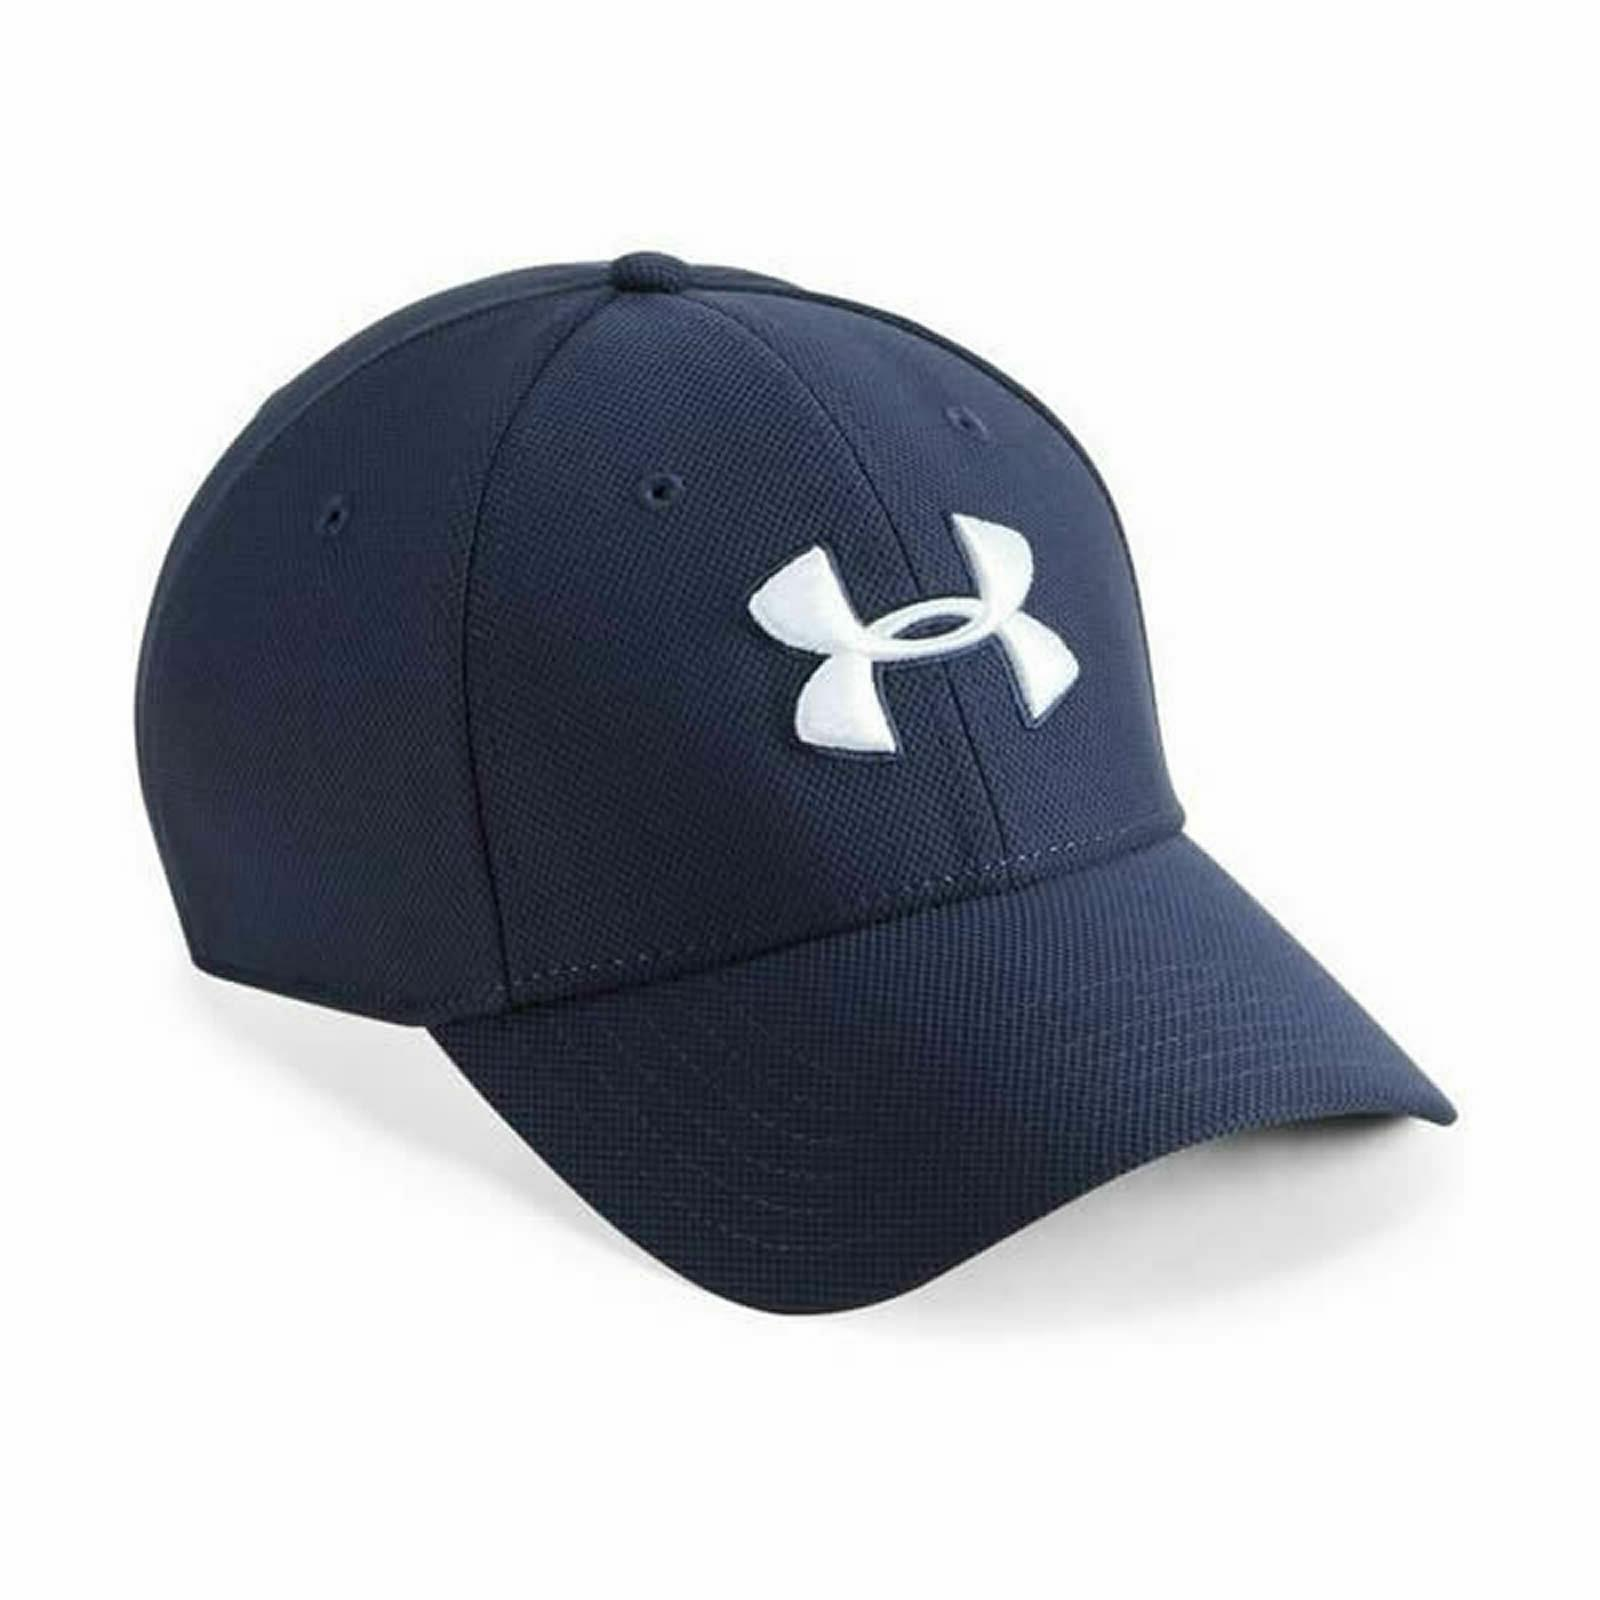 New Fit Golf Cap Embroidered Unisex Hat